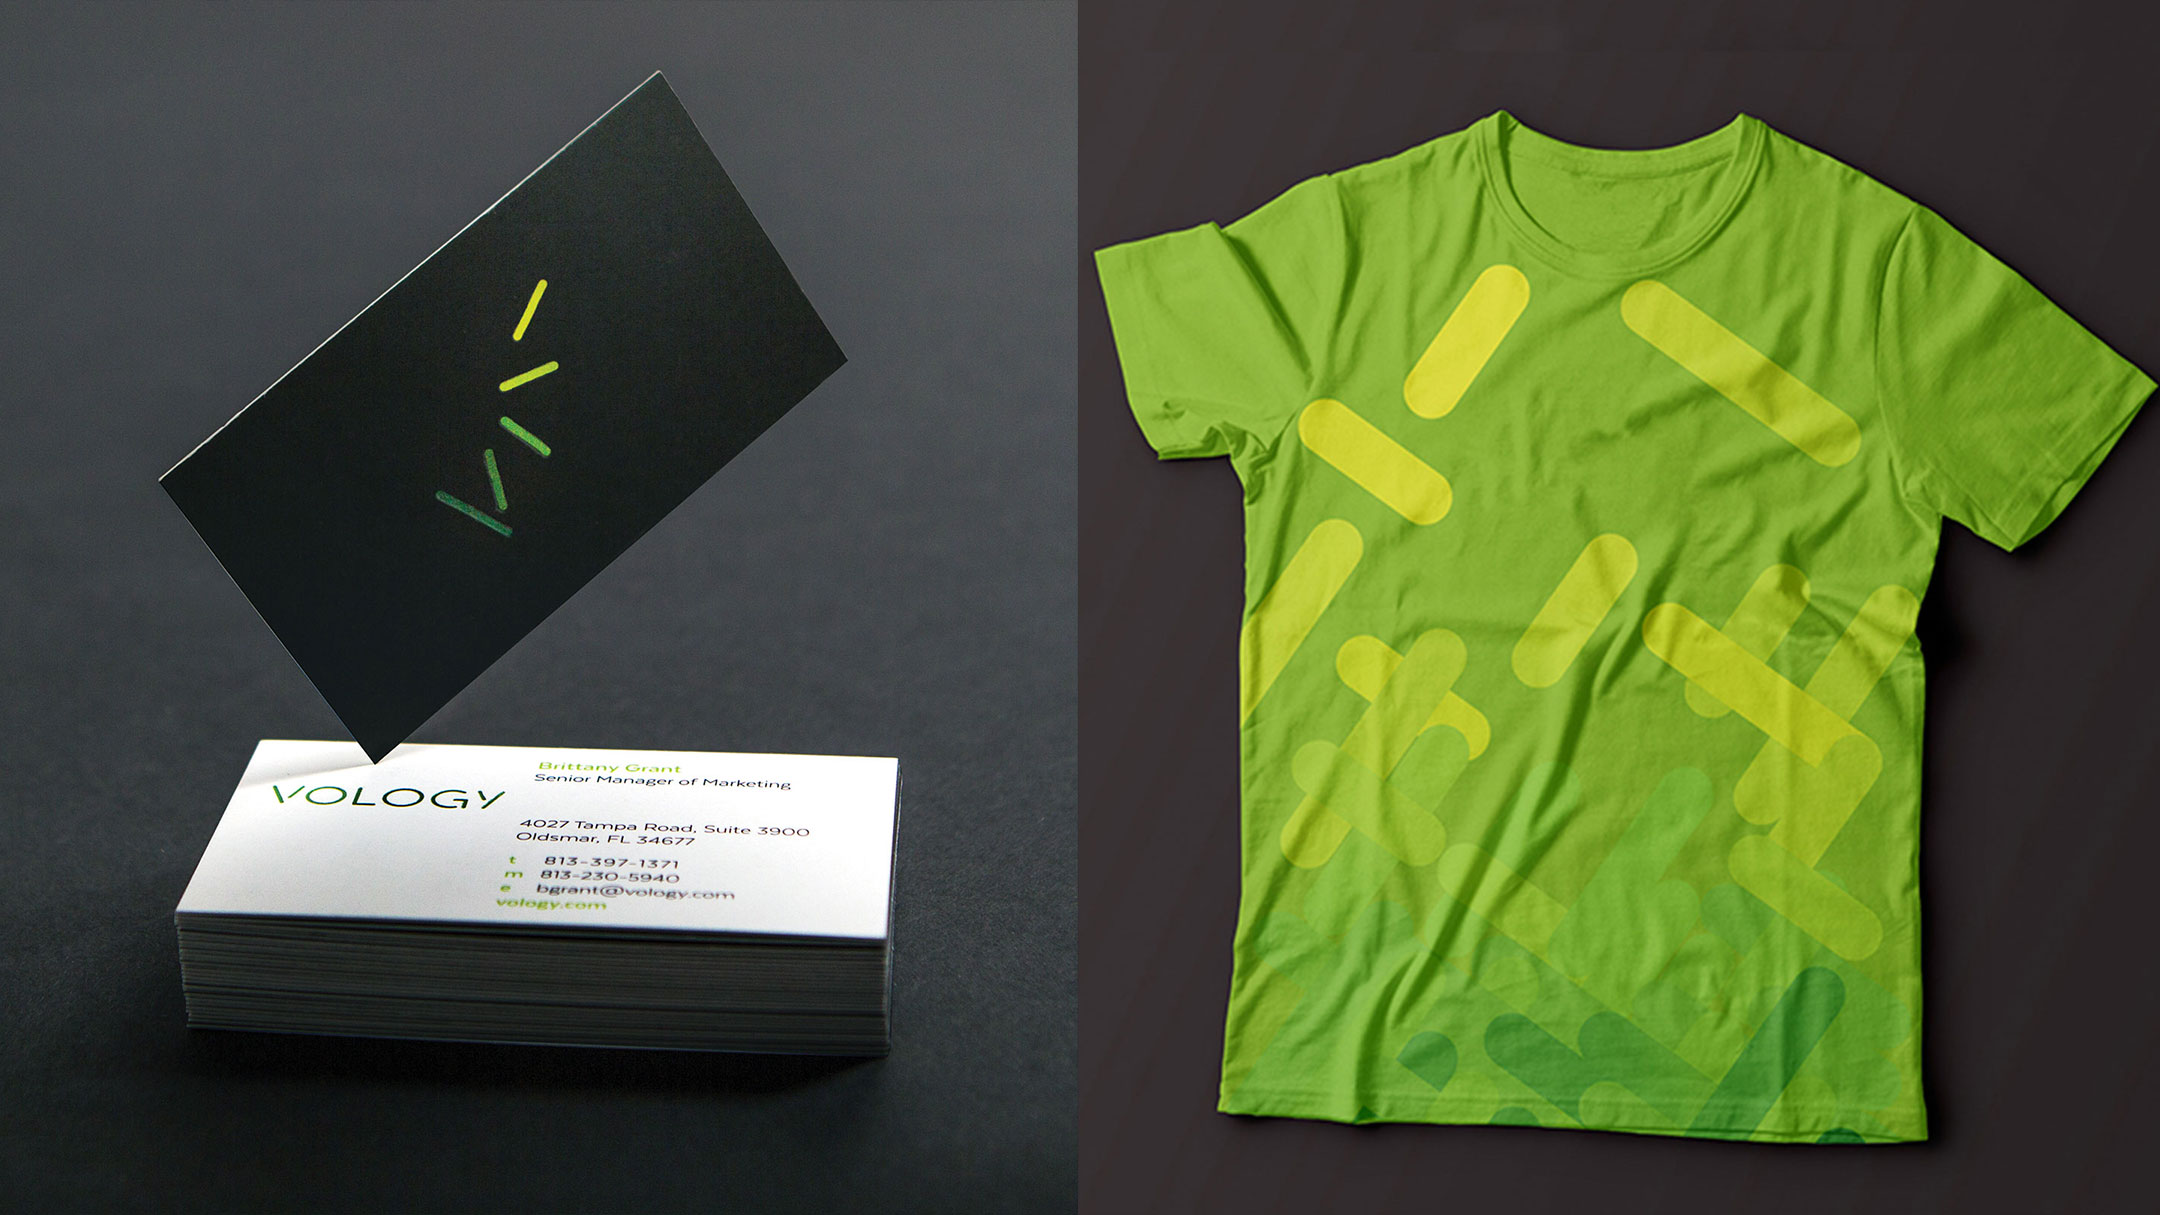 Vology business cards and branded t-shirt